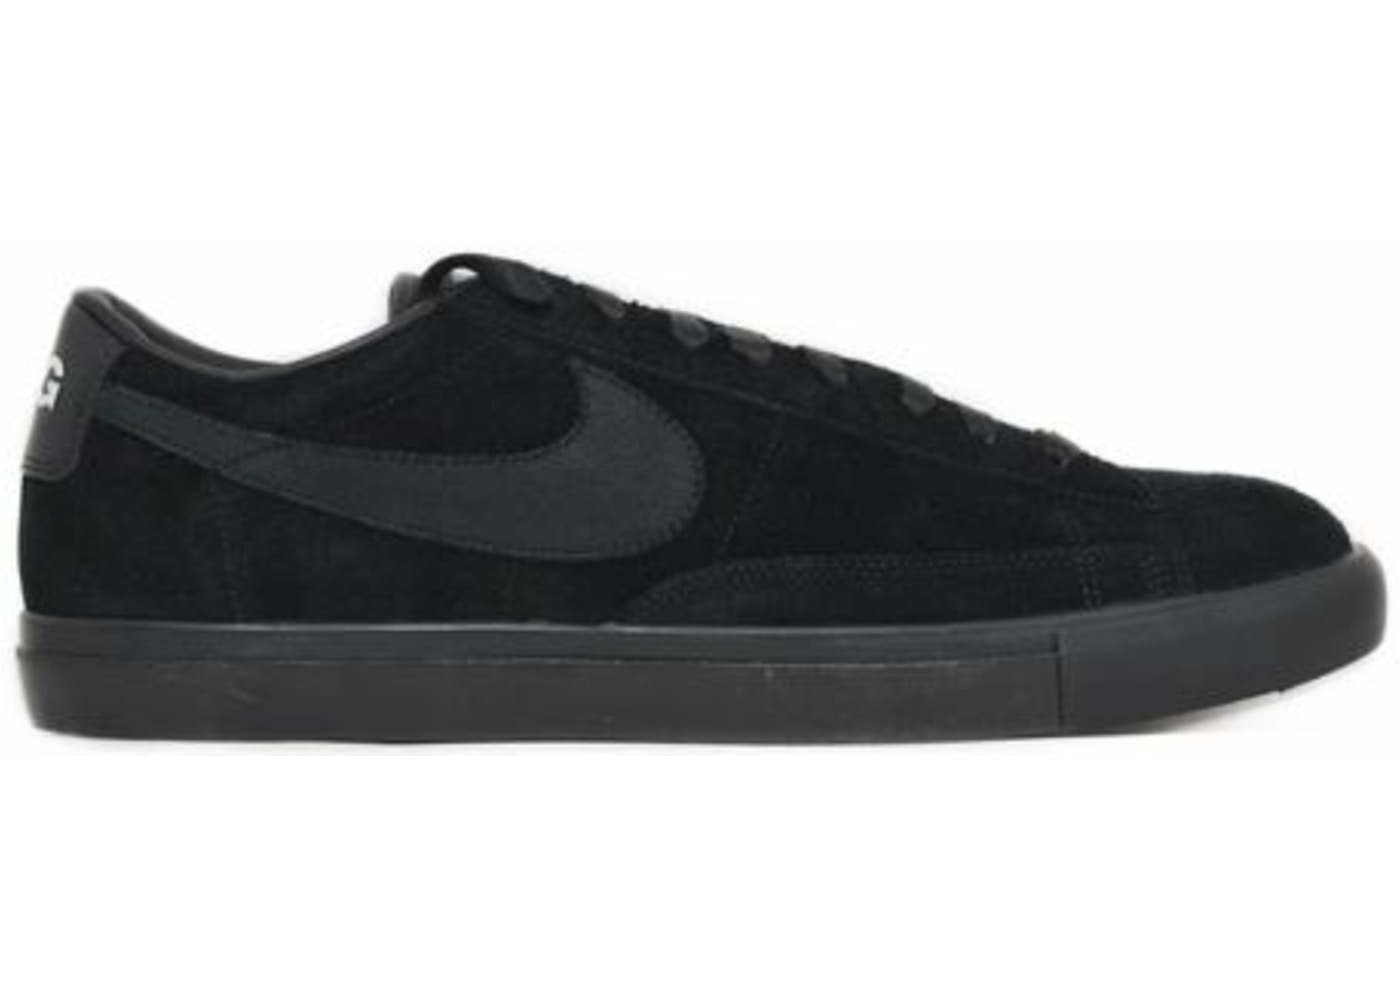 official photos dce96 70294 Nike SB Blazer Low Comme des Garcons Black